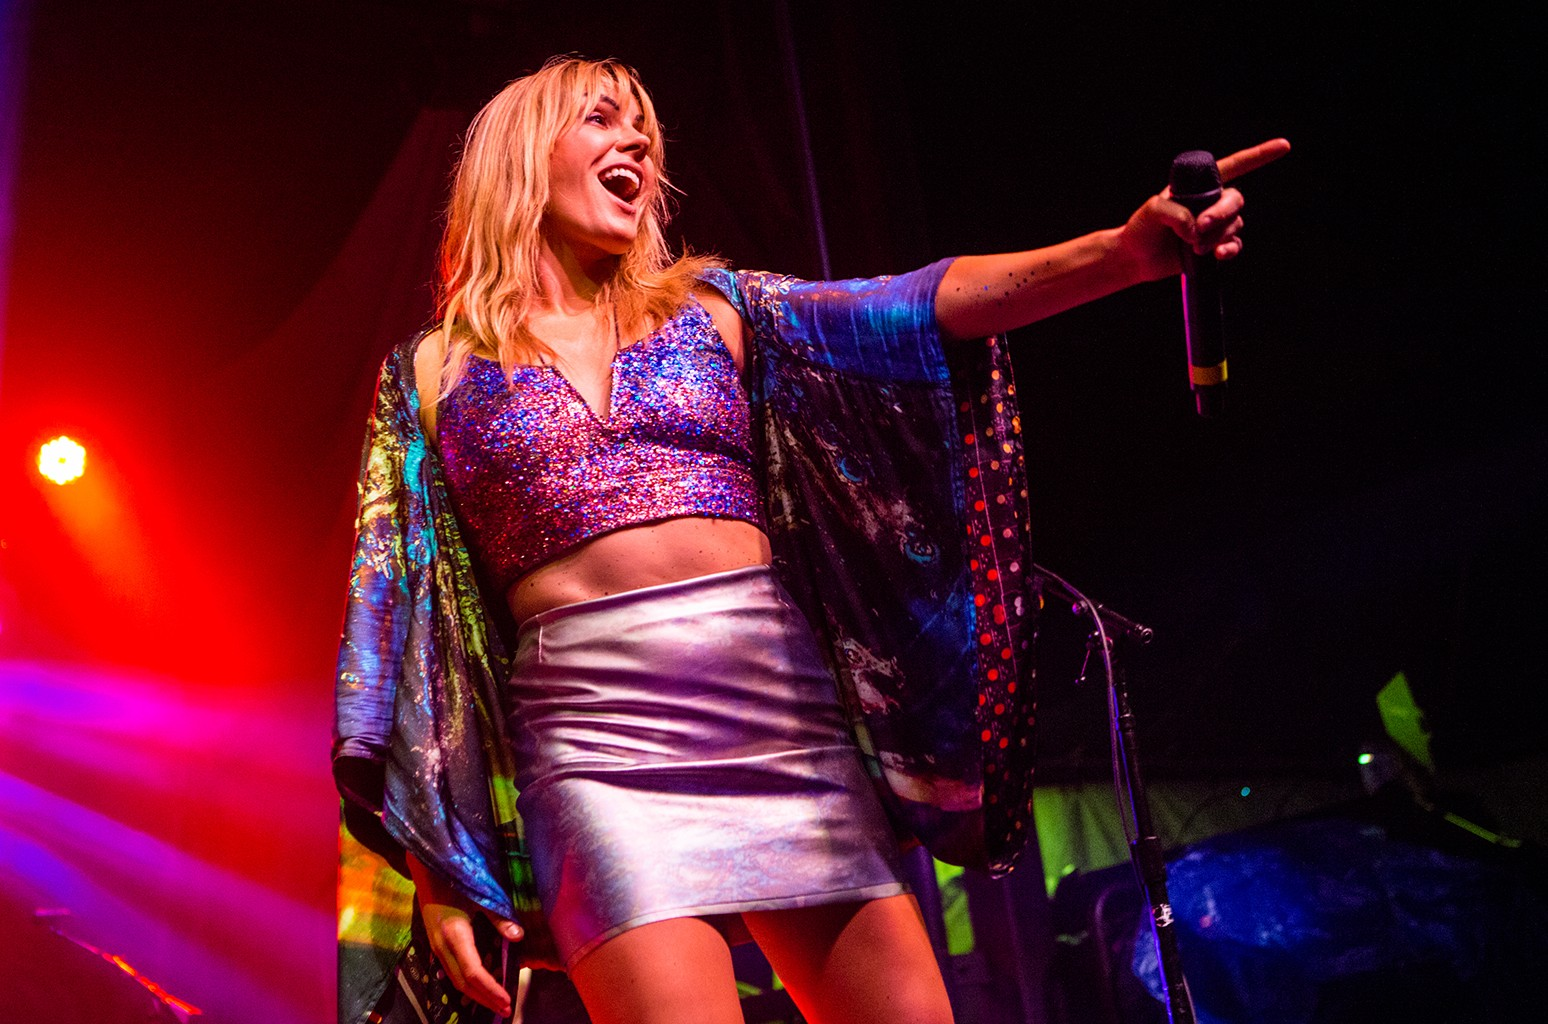 Grace Potter Dawes Moon Taxi To Play Headcount Democratic Republican National Convention Jams Billboard Josh potter joins the podcast to talk about everything! grace potter dawes moon taxi to play